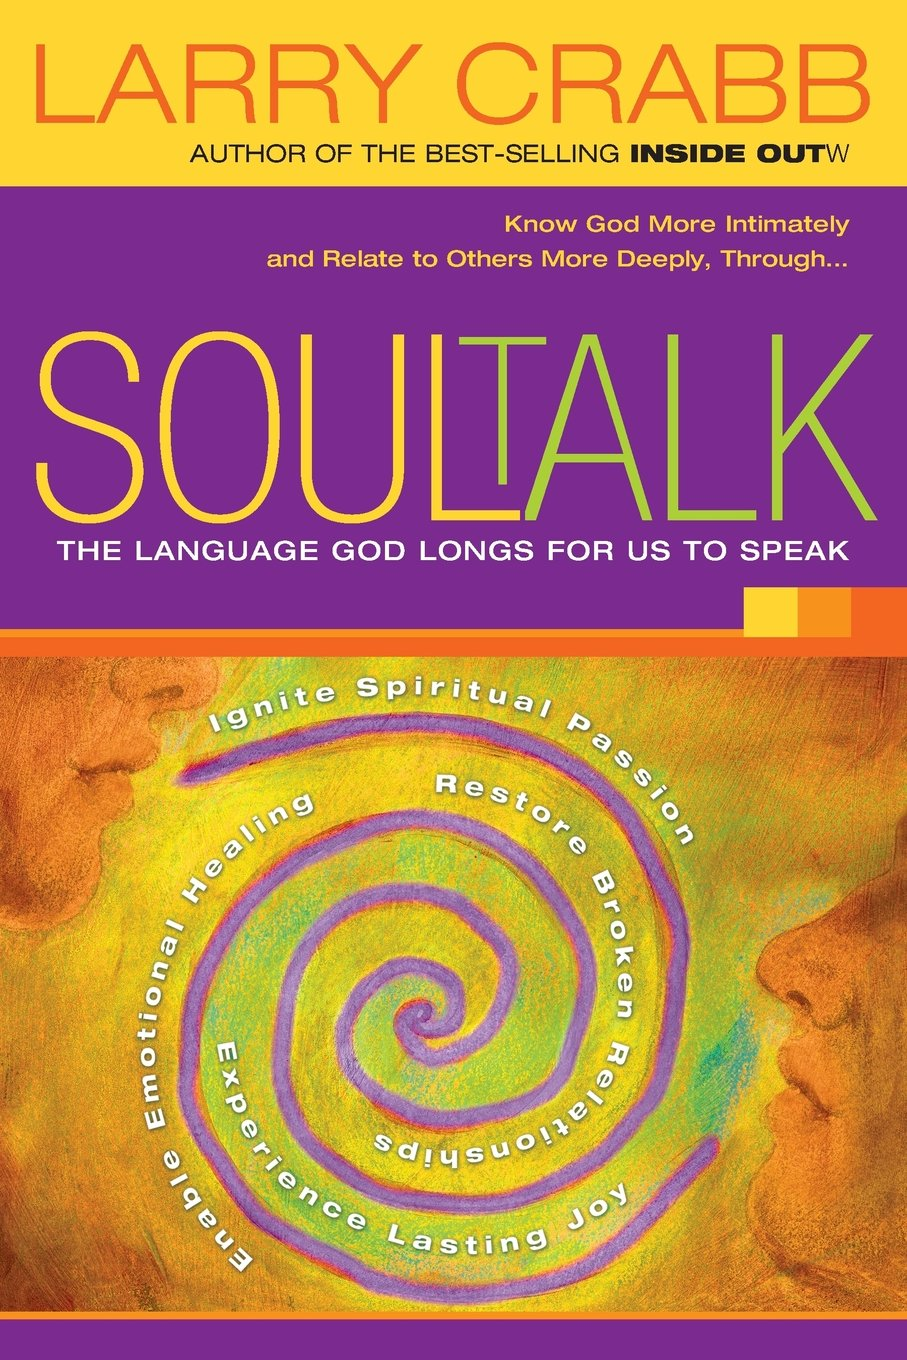 SoulTalk: The Language God Longs for Us to Speak